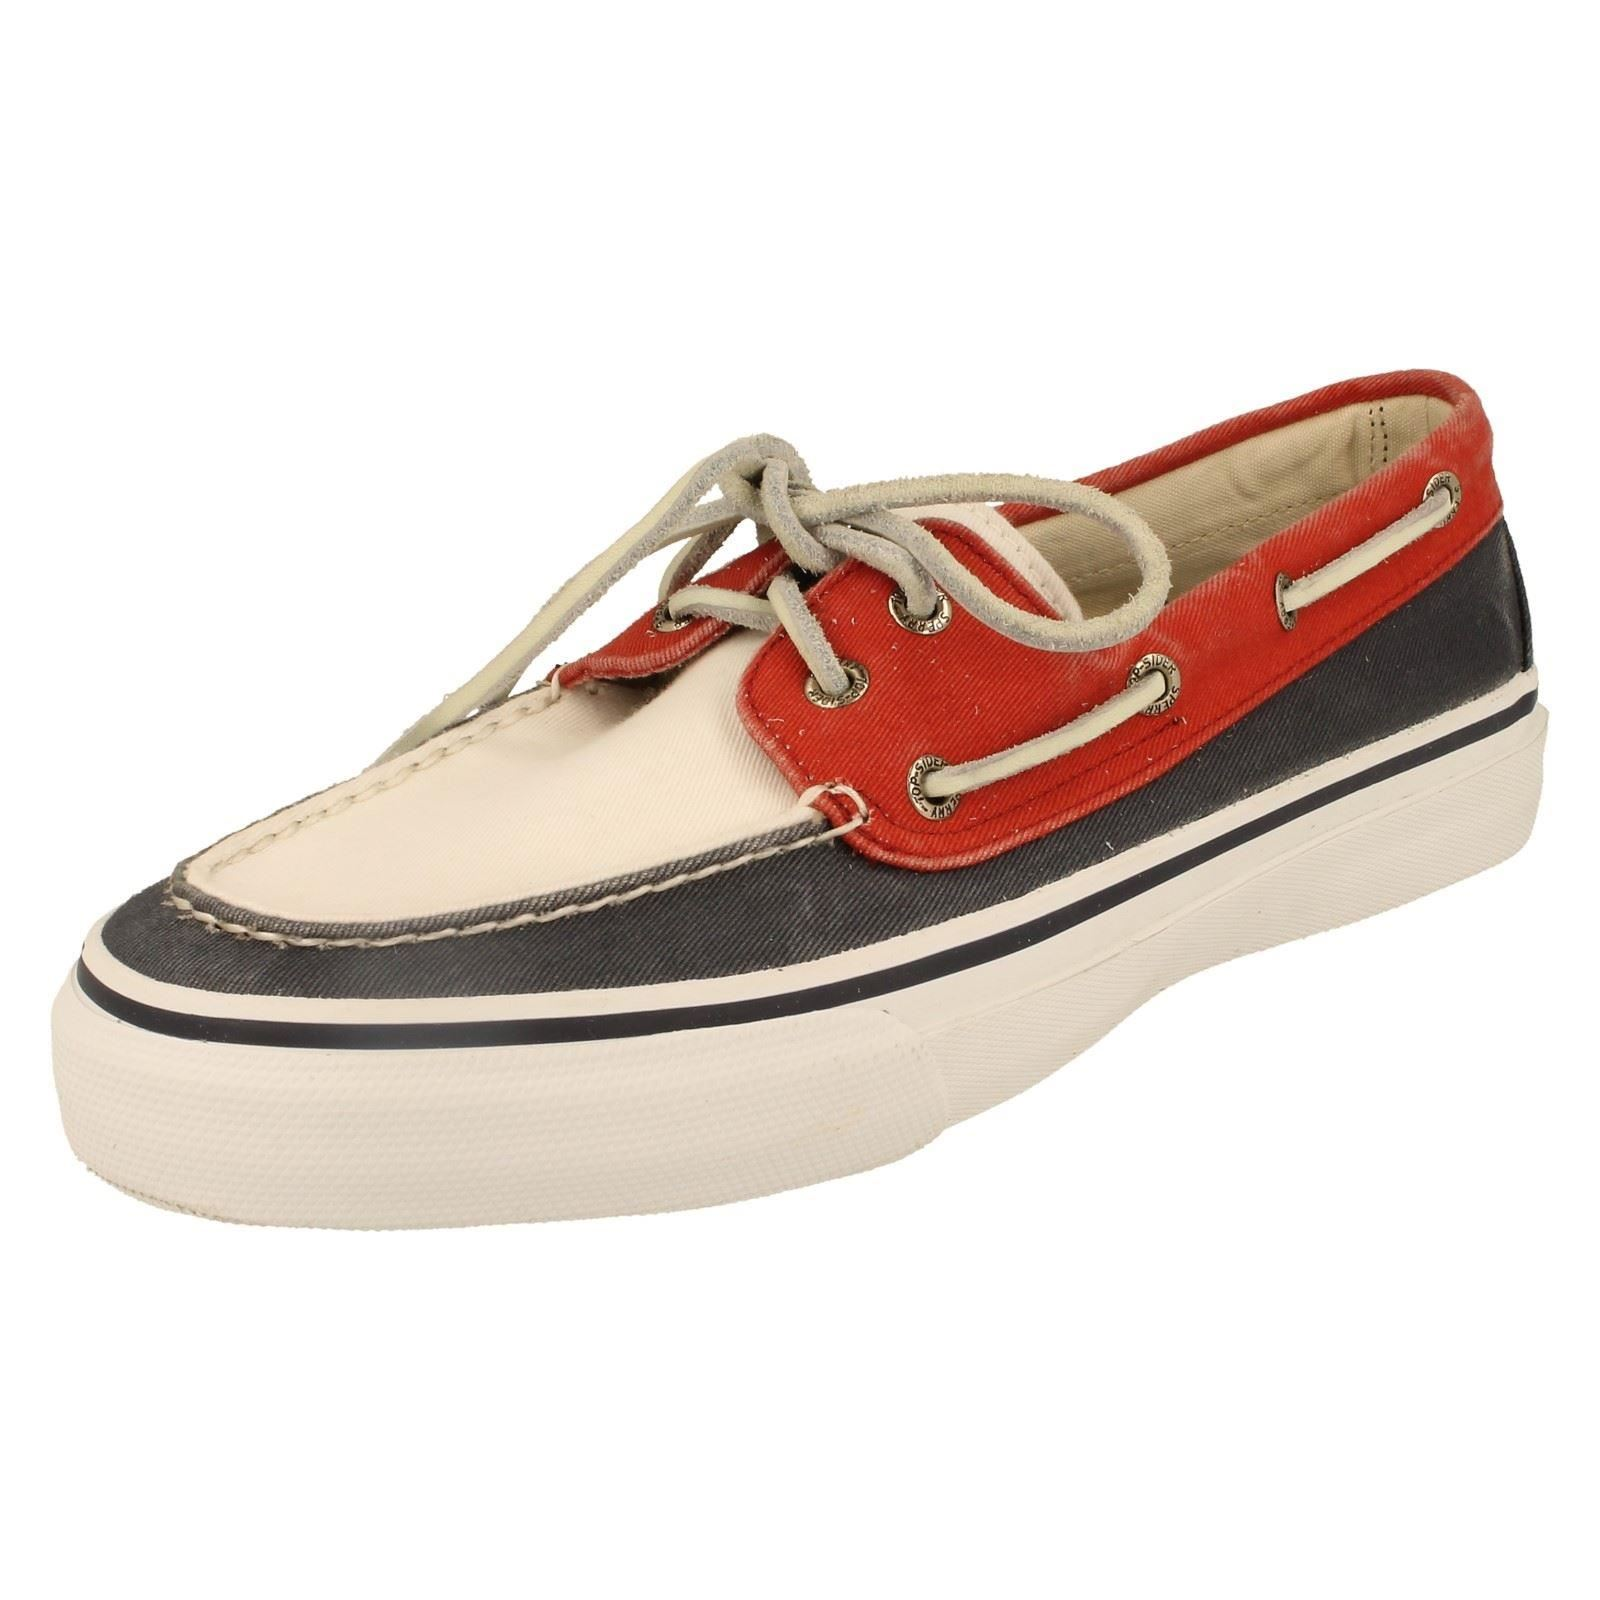 Sperry Men S Bahama Boat Shoes